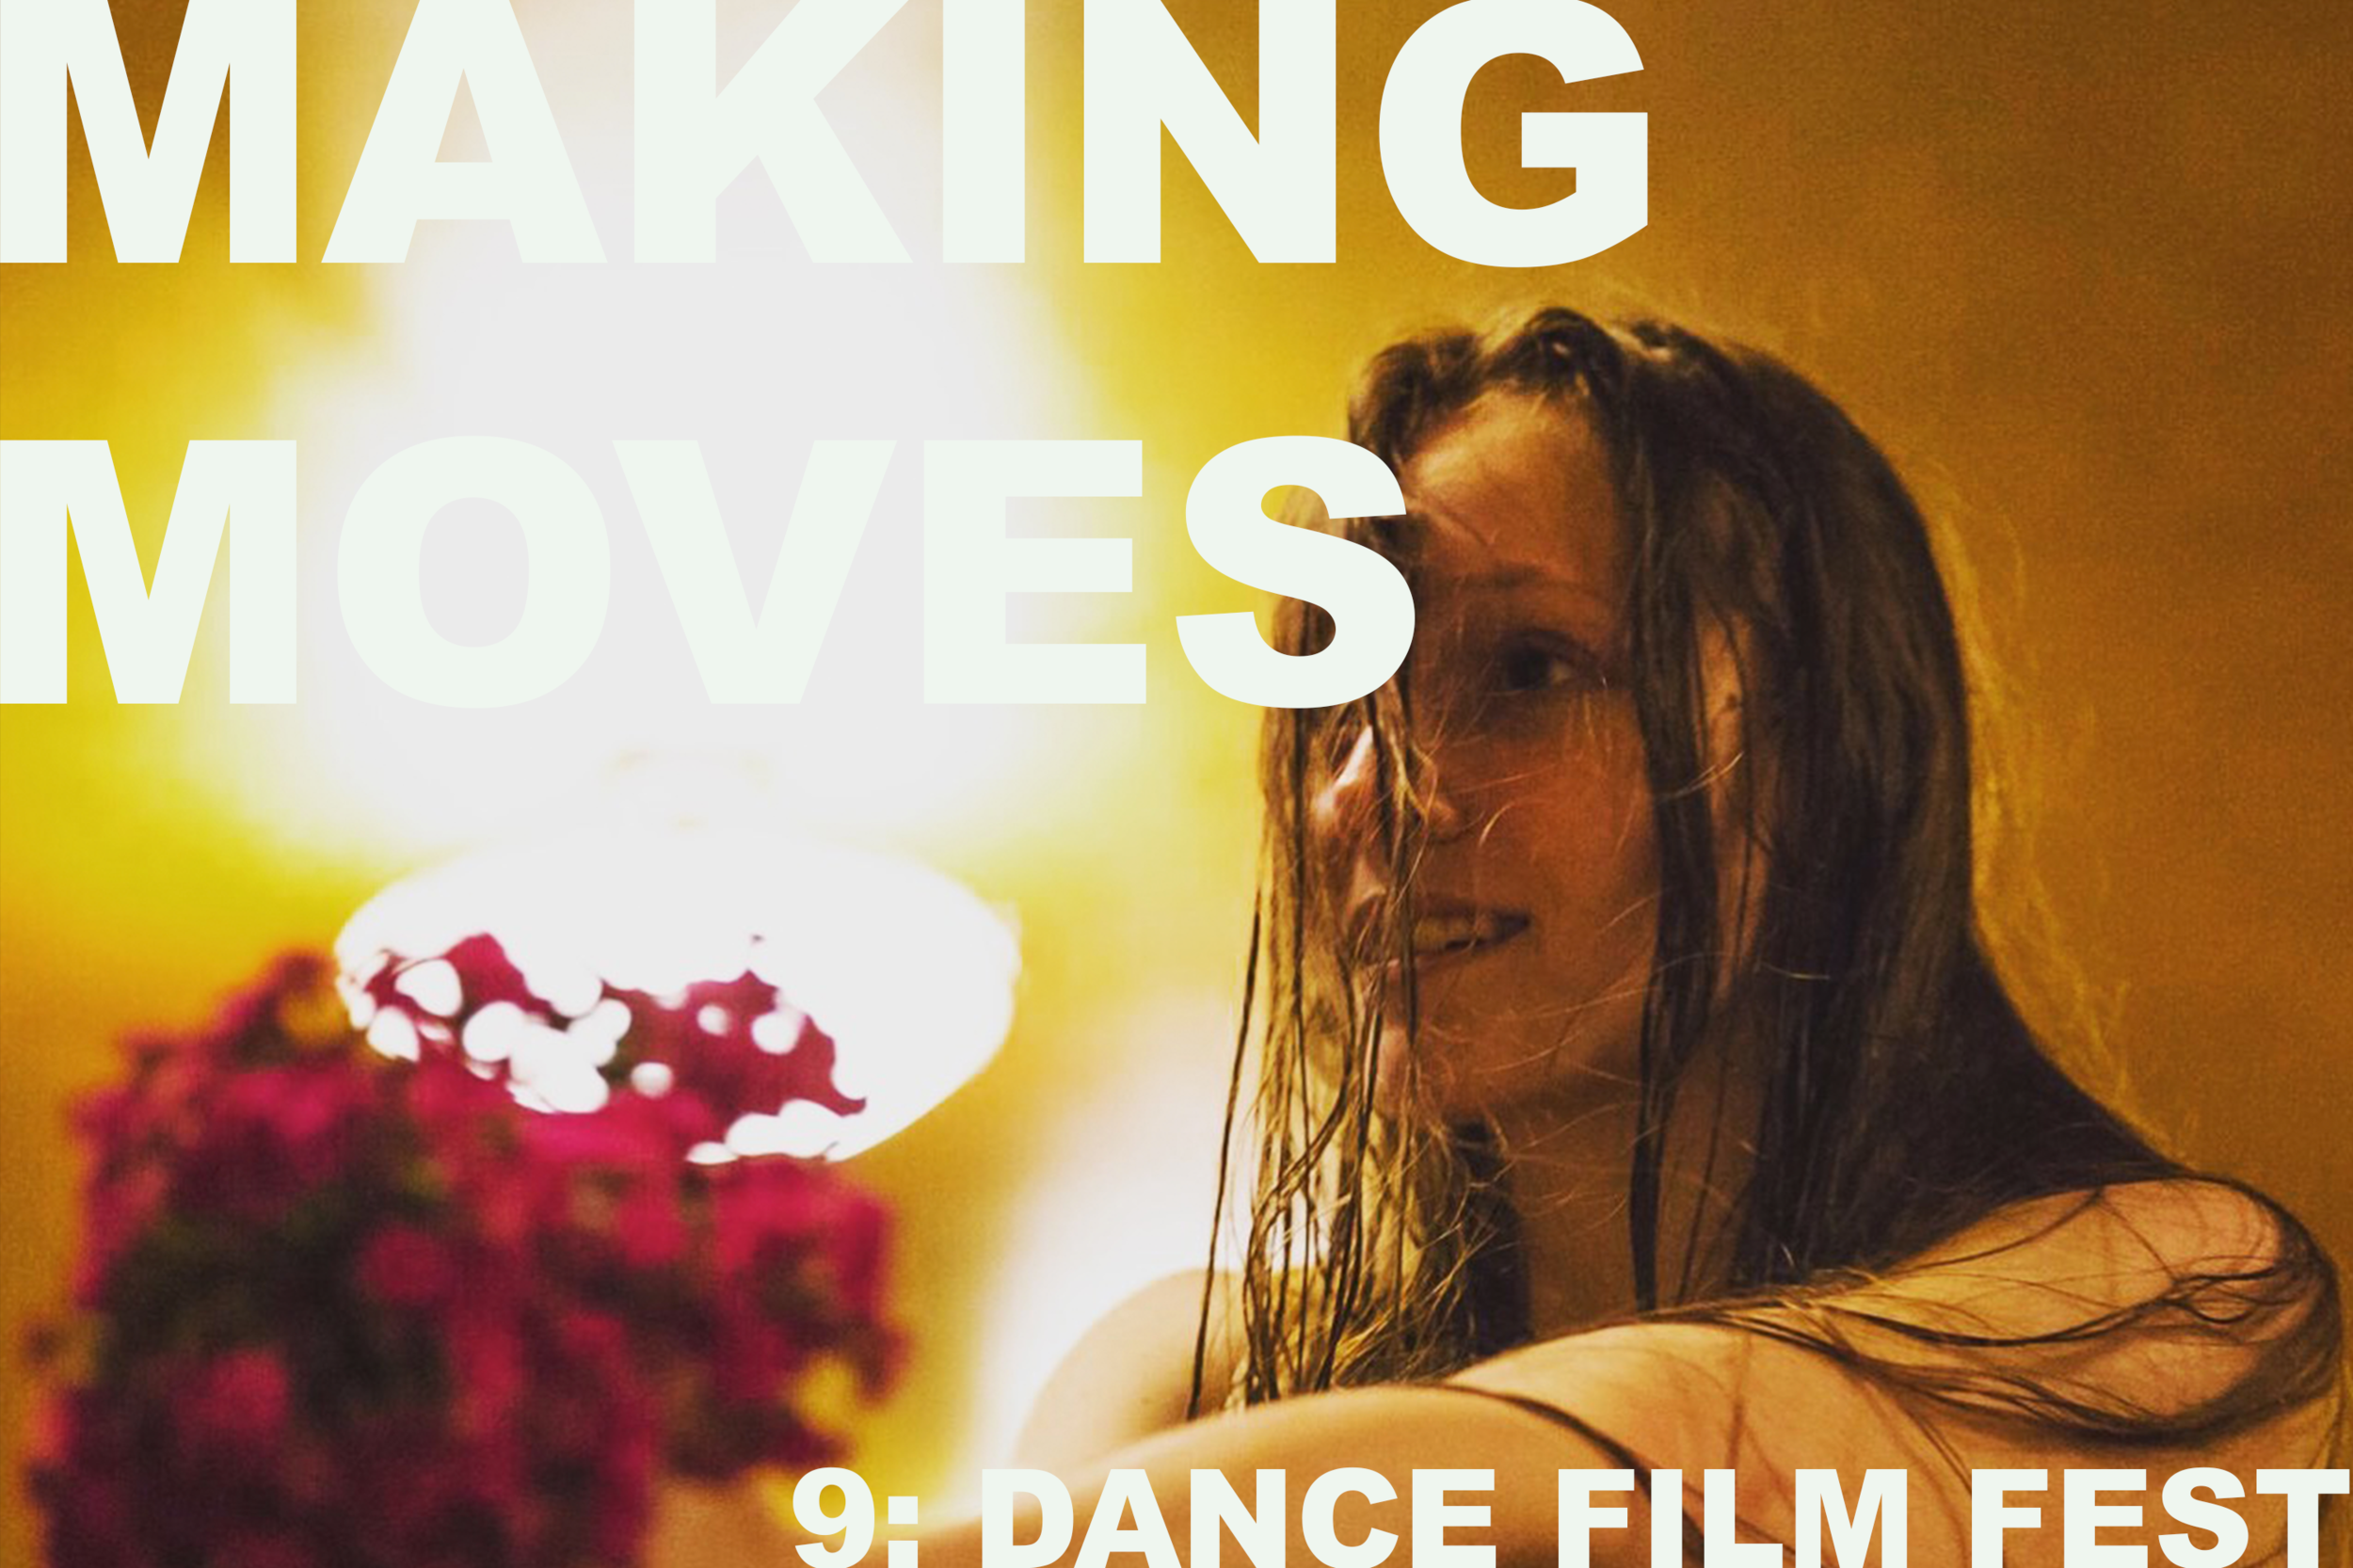 Join us for Making Moves 9: Dance Film Festival! Enjoy an evening of dance on film by local, national, and international dance artists. Cool off from the dog days of summer with a beverage and engage with local dancers, artists, and enthusiasts. Curated by Kyle Mullins.  The event is FREE and open to the public. All ages are welcome. Doors open at 6:30 PM and the screening begins at 7:00 PM!  A monthly gathering, Making Moves aims to build community through a shared passion for dance and movement. Throughout 2019, Making Moves will host improvisation jams and provide performance opportunities for local and regional dance makers. The series is produced by Kyle Mullins and made possible by Charlotte Street Foundation.